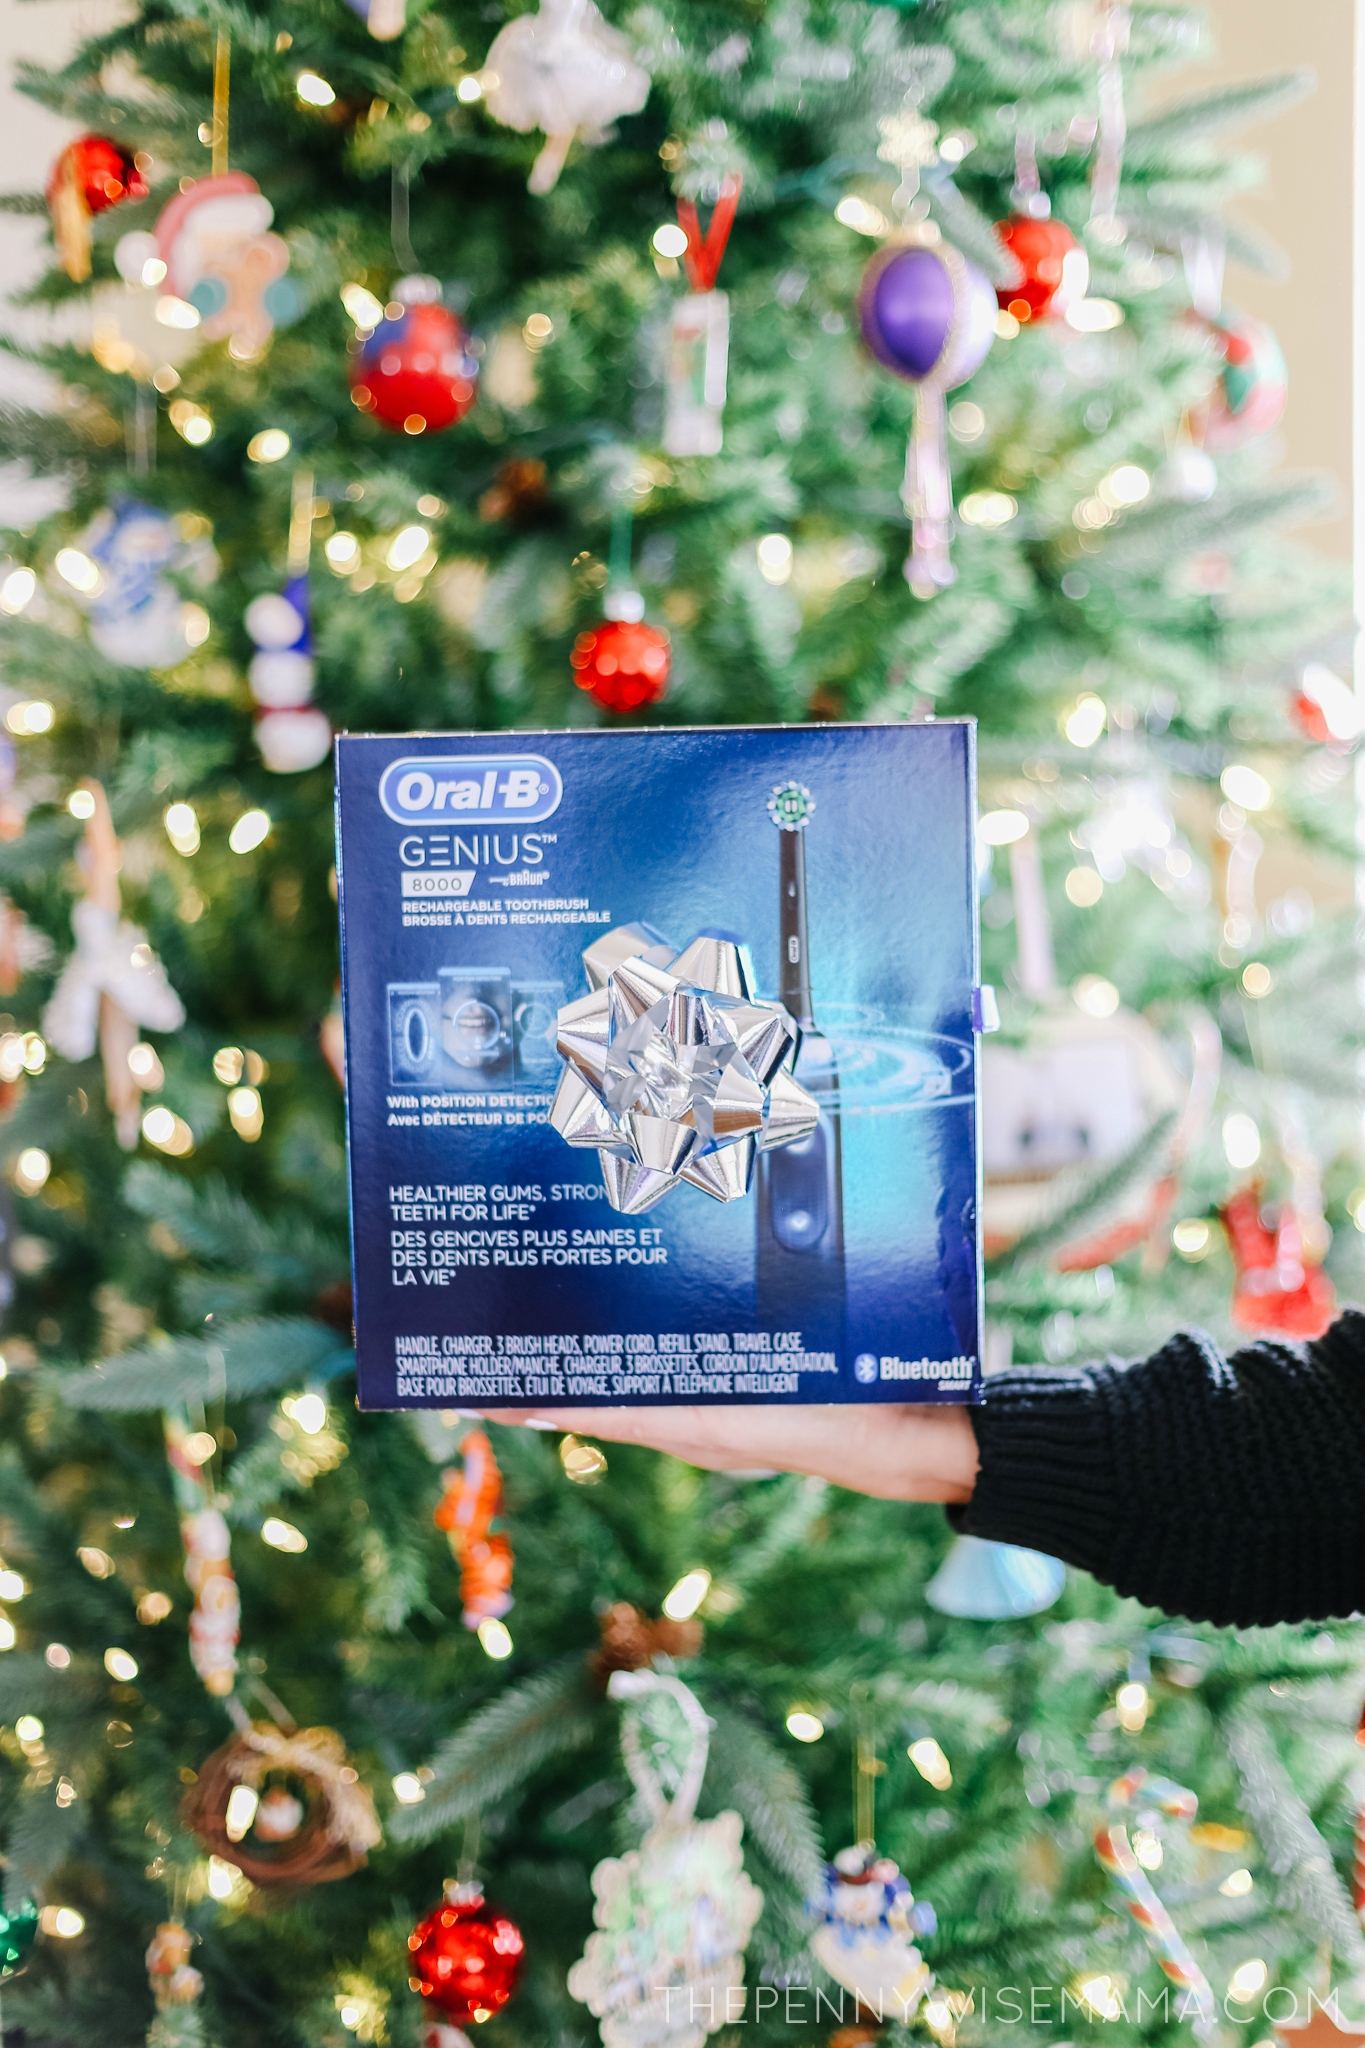 Oral-B Genius Pro 8000 Cyber Monday Deal